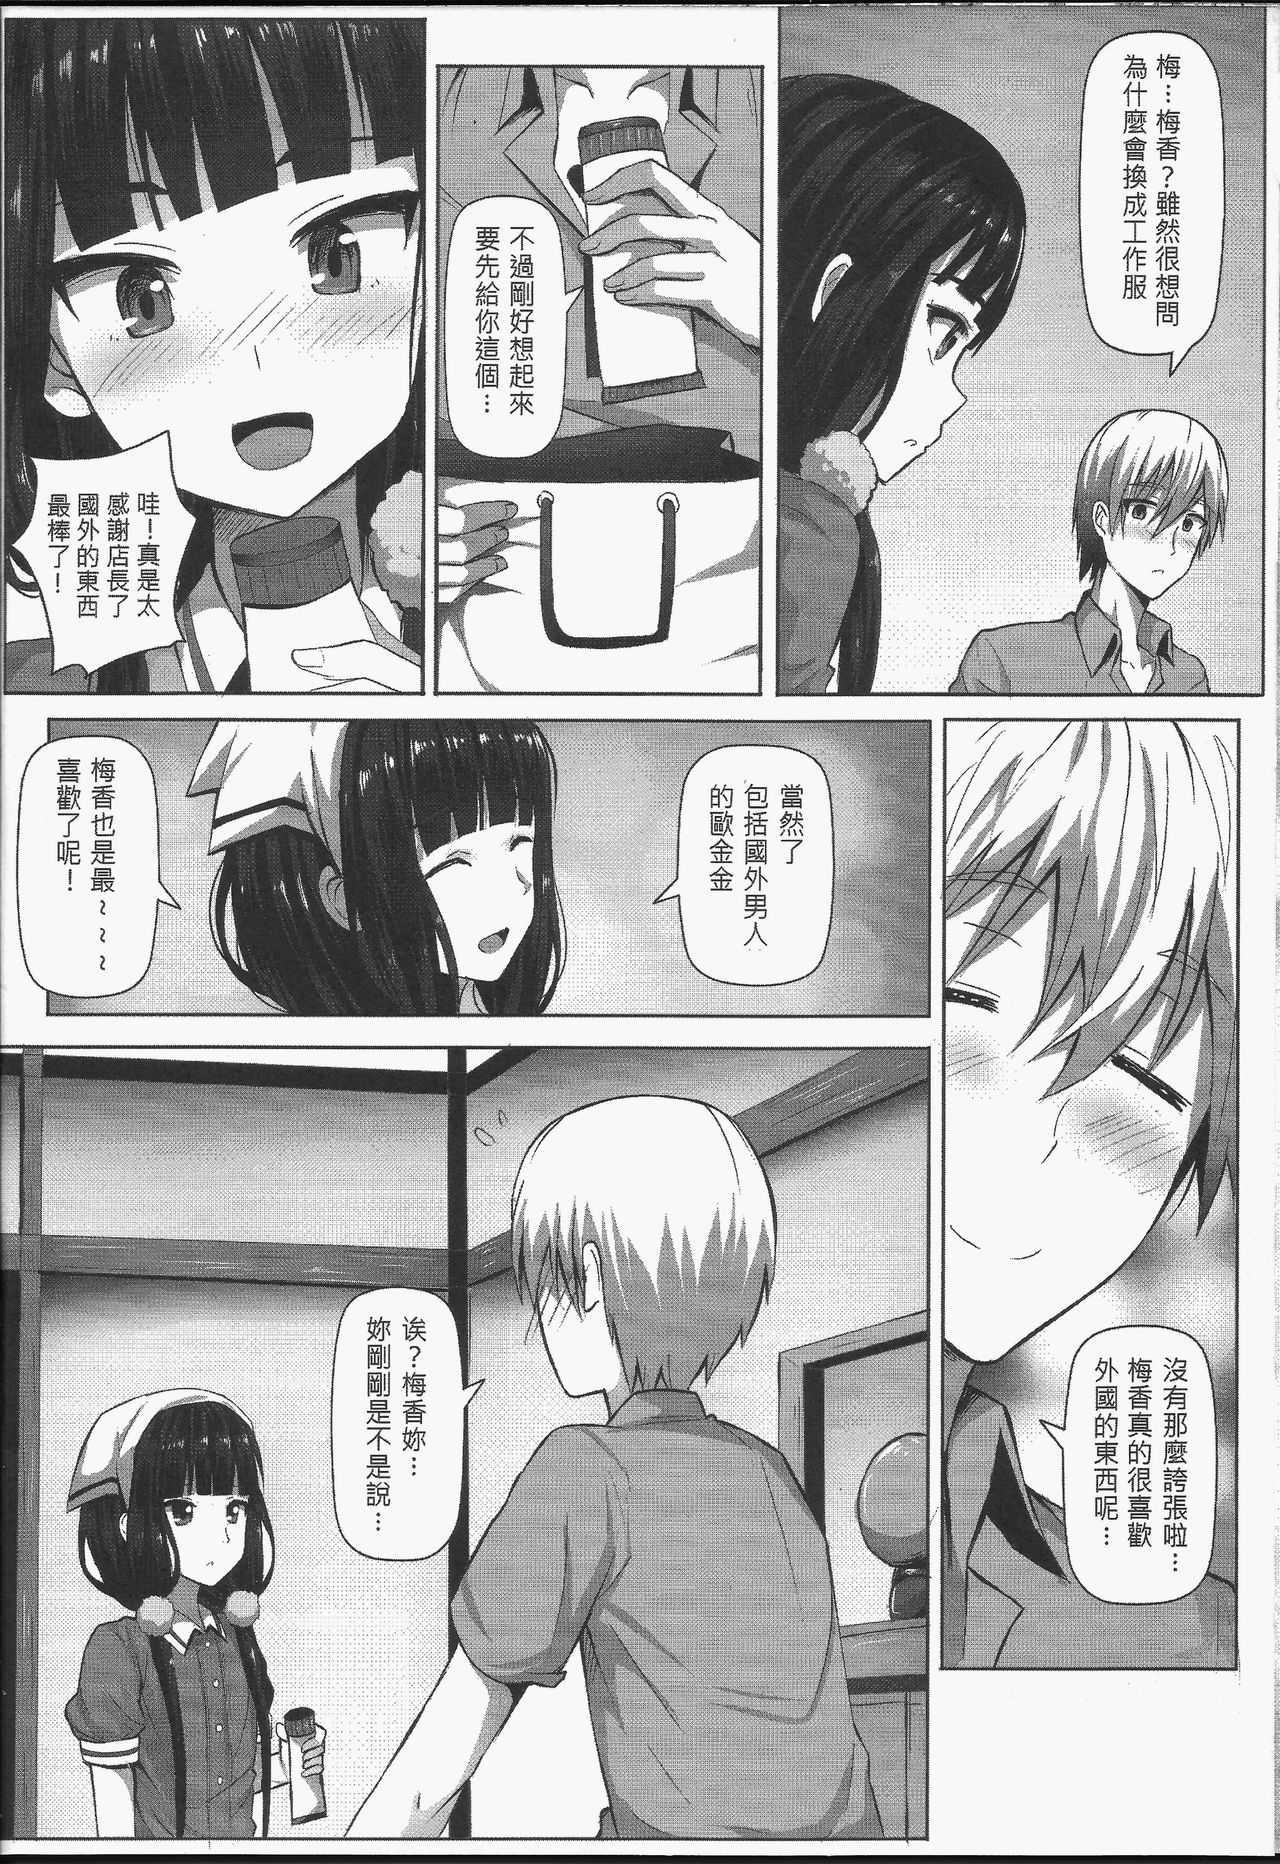 (FF31) [Hirani (Ginhaha)] C.C.B - Cross Cultural Bitch (Blend S) [Chinese] page 5